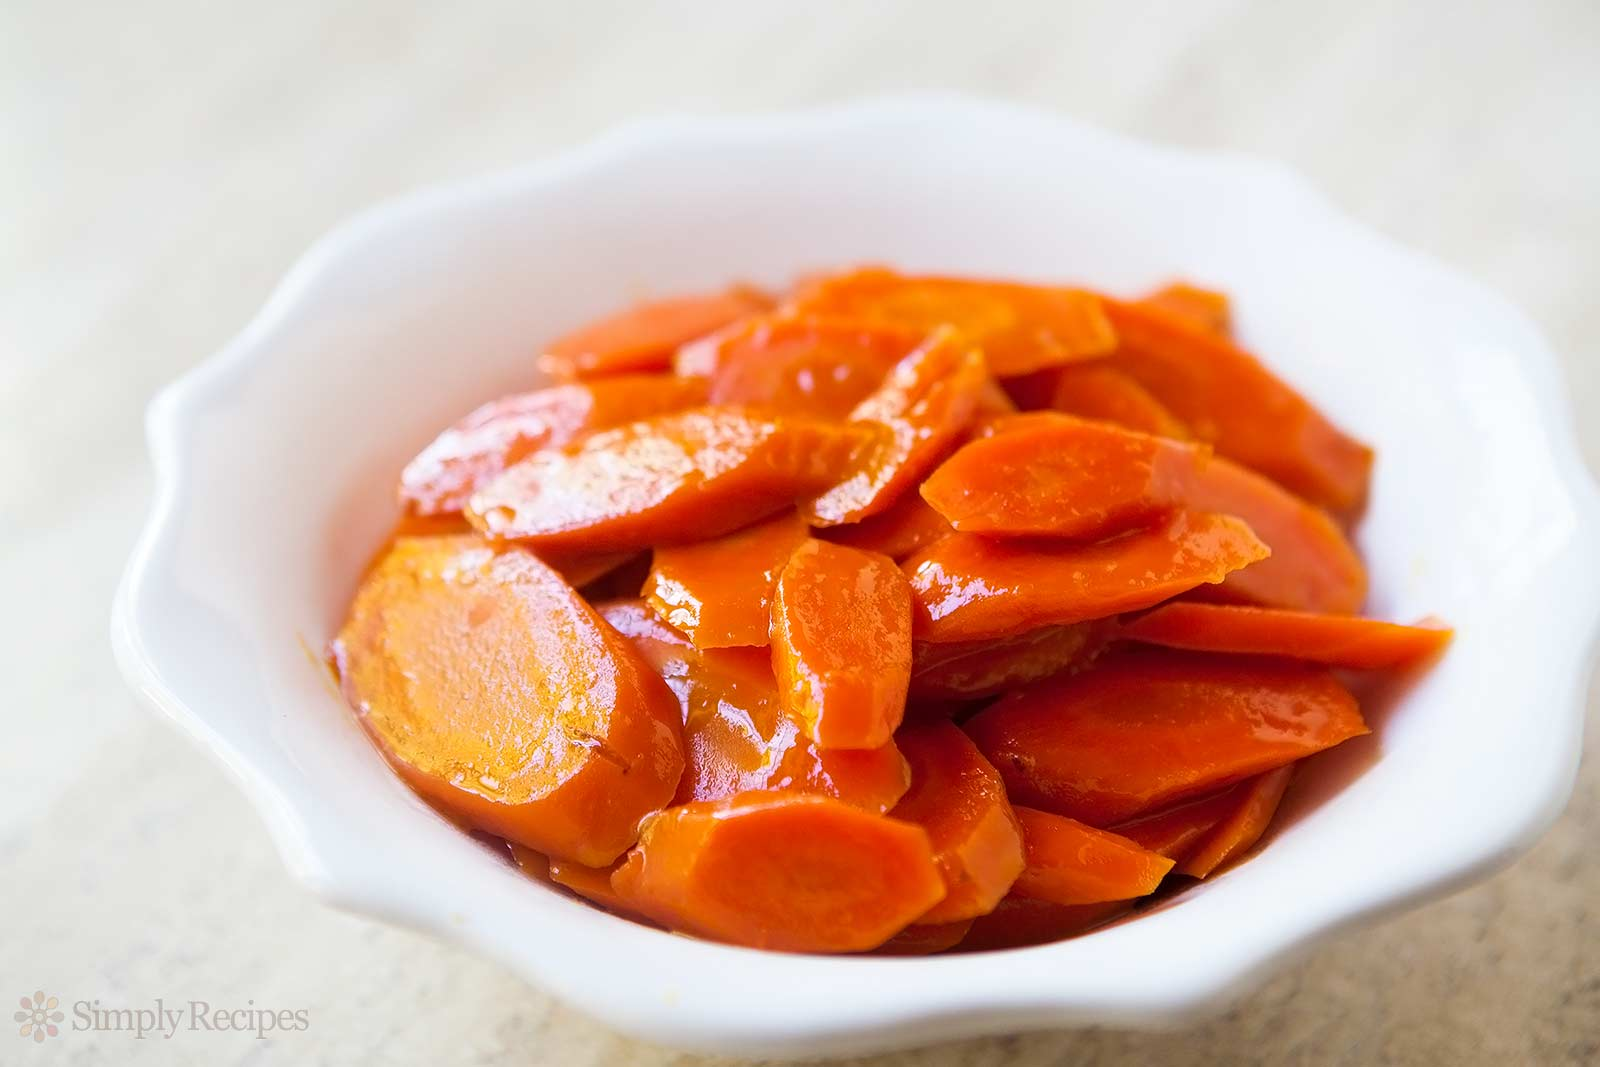 Veggies: Carrots (1 lb)